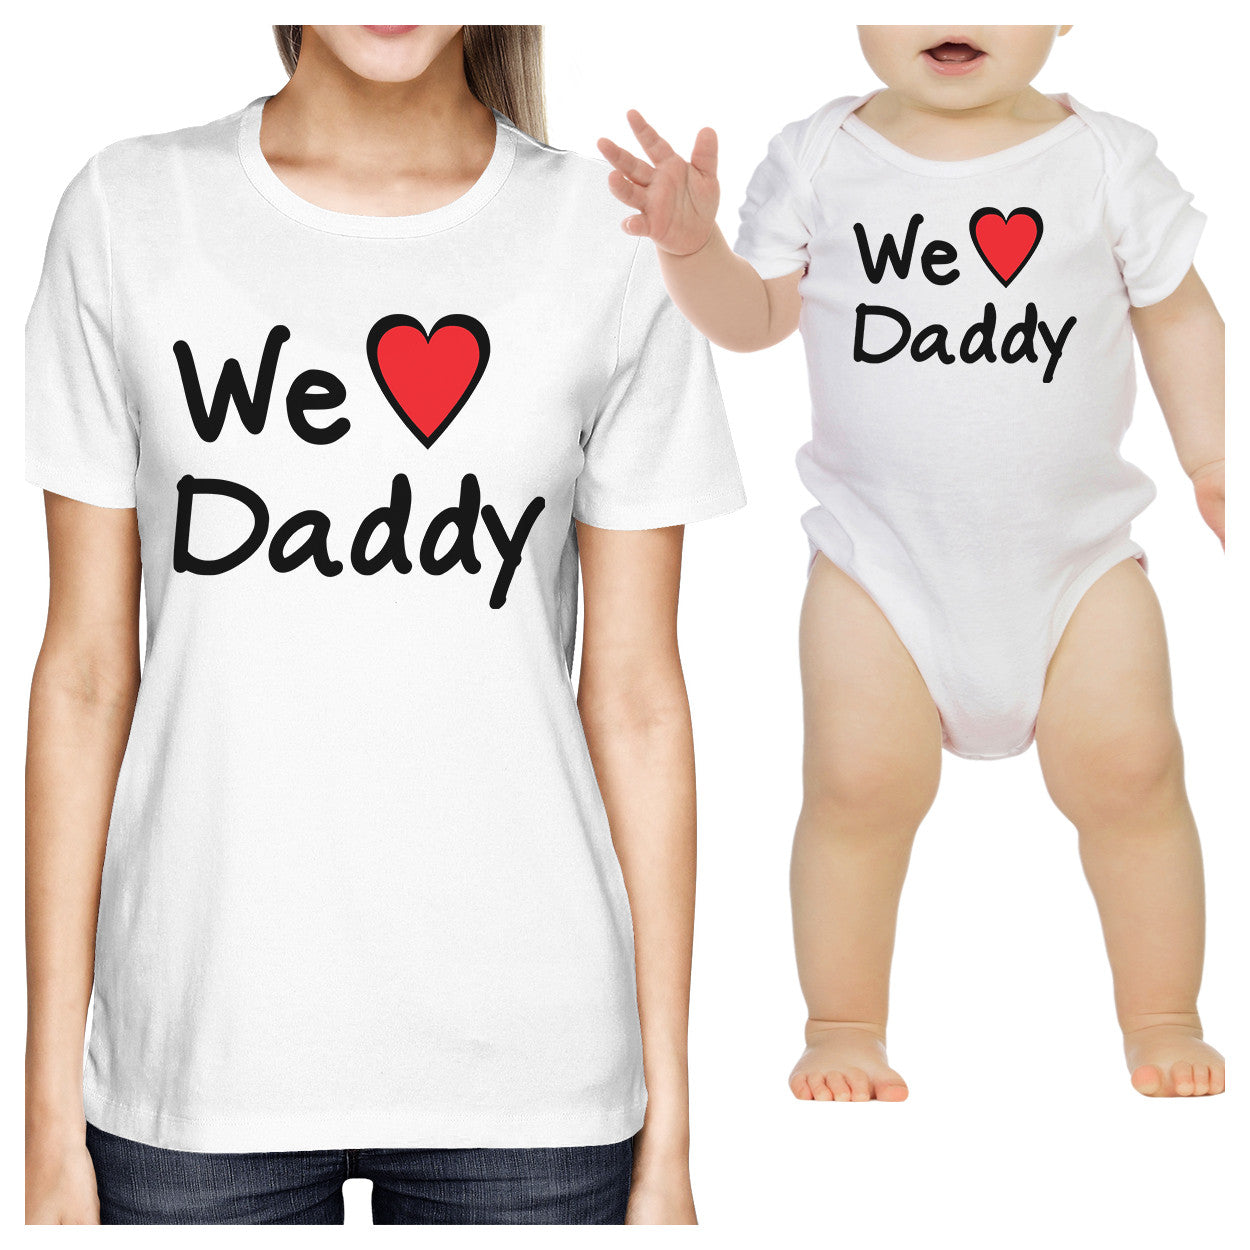 485996e508 We Love Daddy White Mom and Baby Matching Shirts Cute Gifts For Dad ...